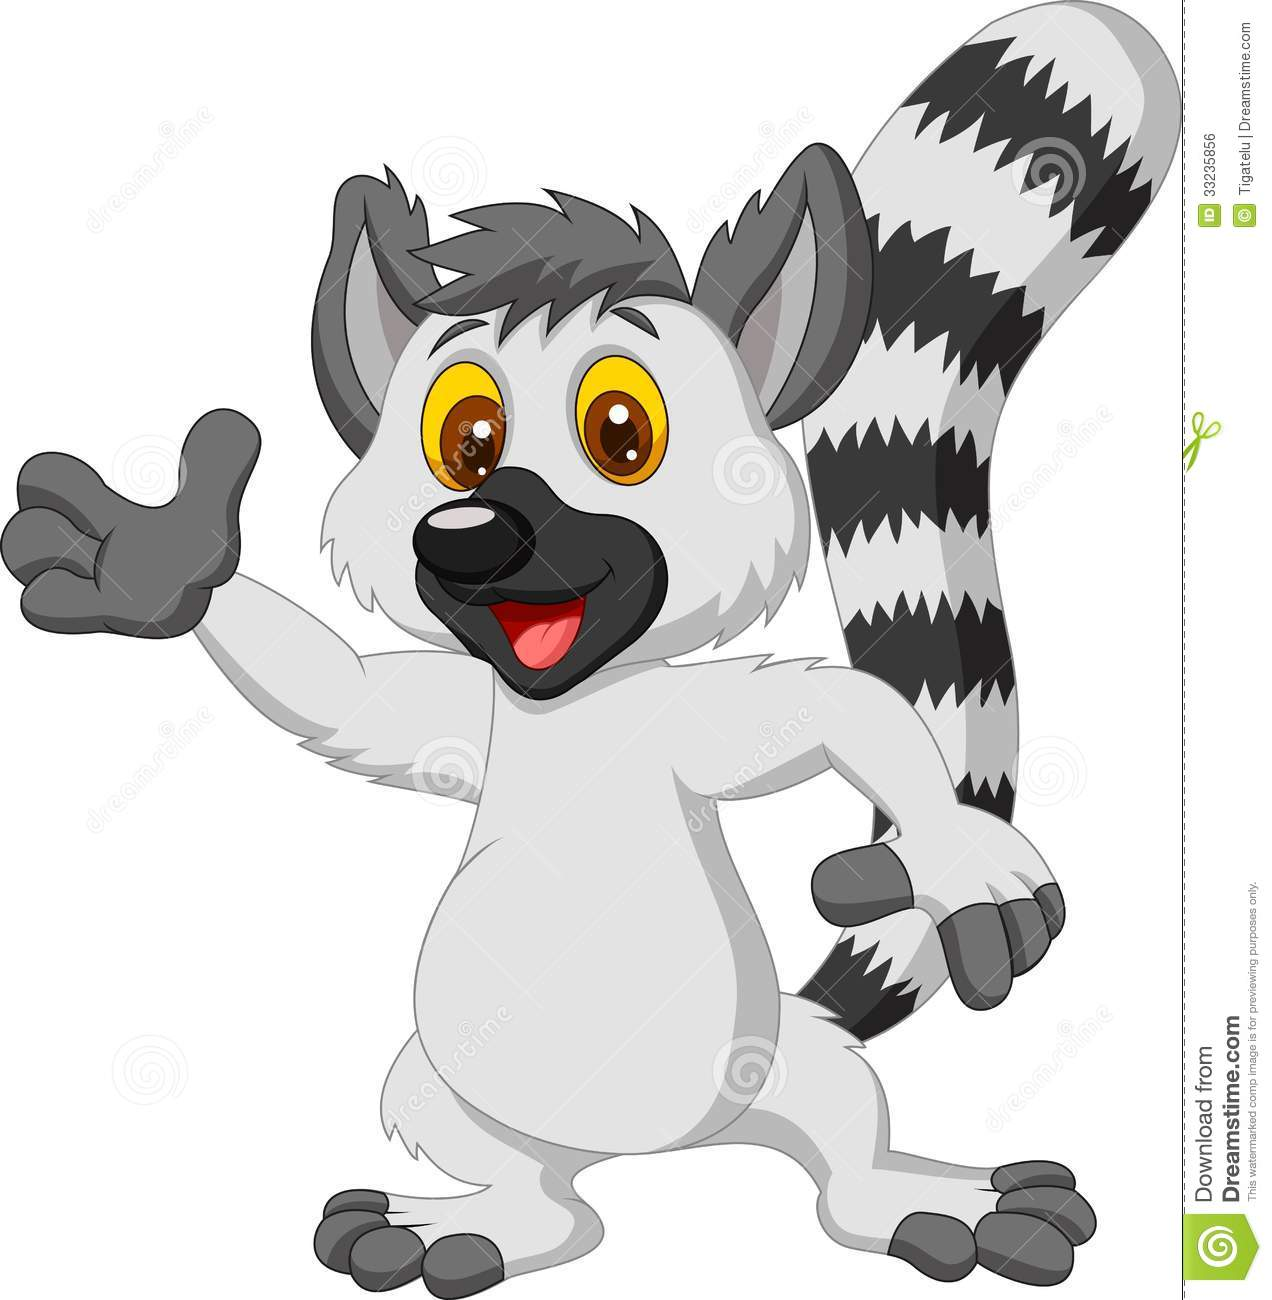 Lemur cartoon waving hand Royalty Free Stock Image